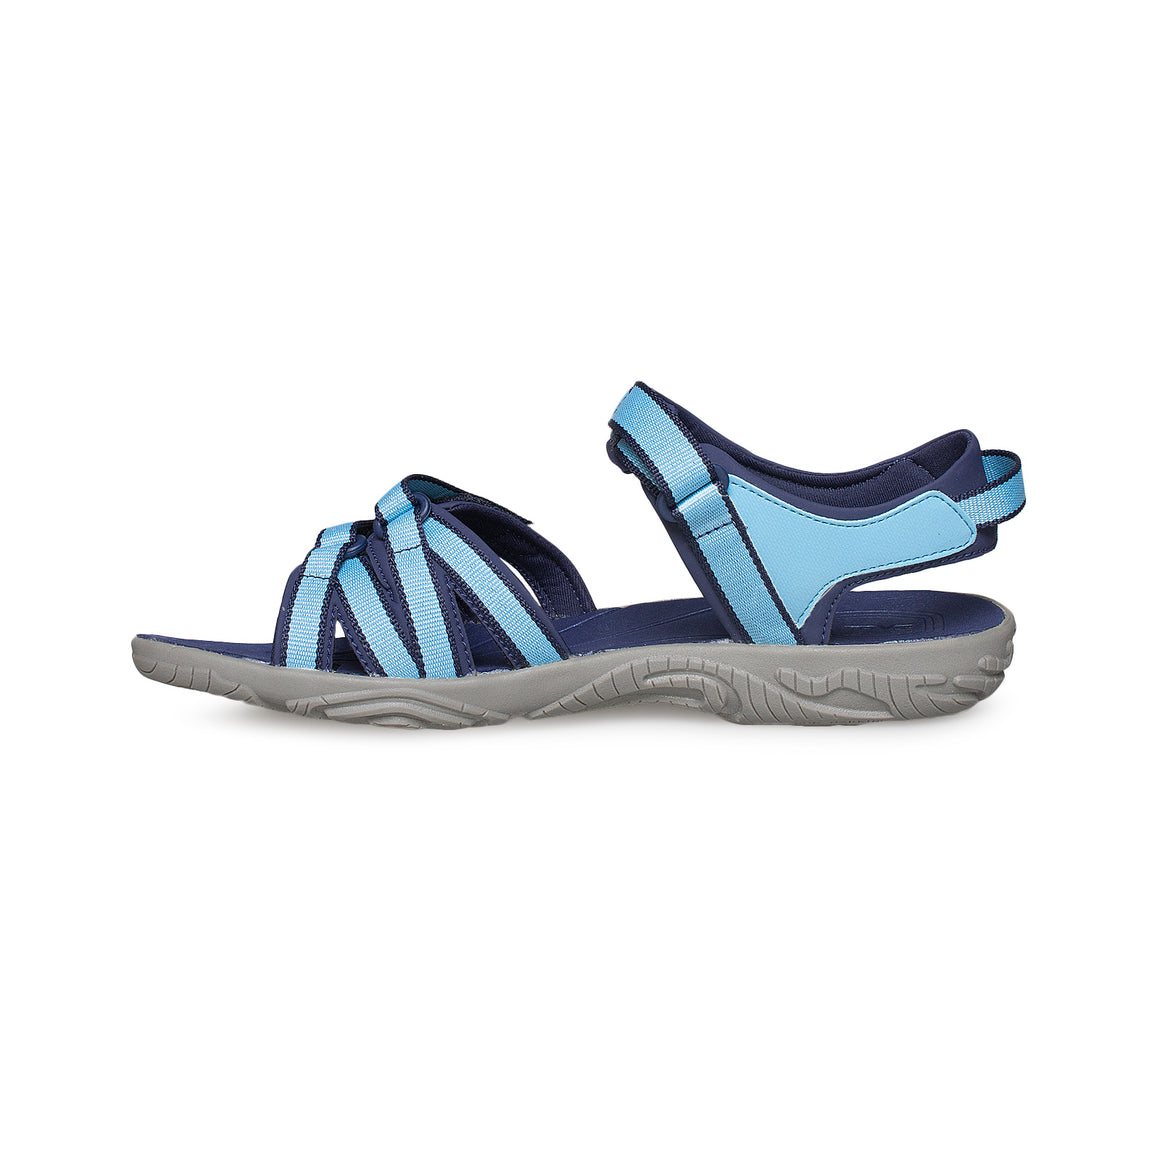 Teva Tirra Alaskan Blue Sandals - Youth